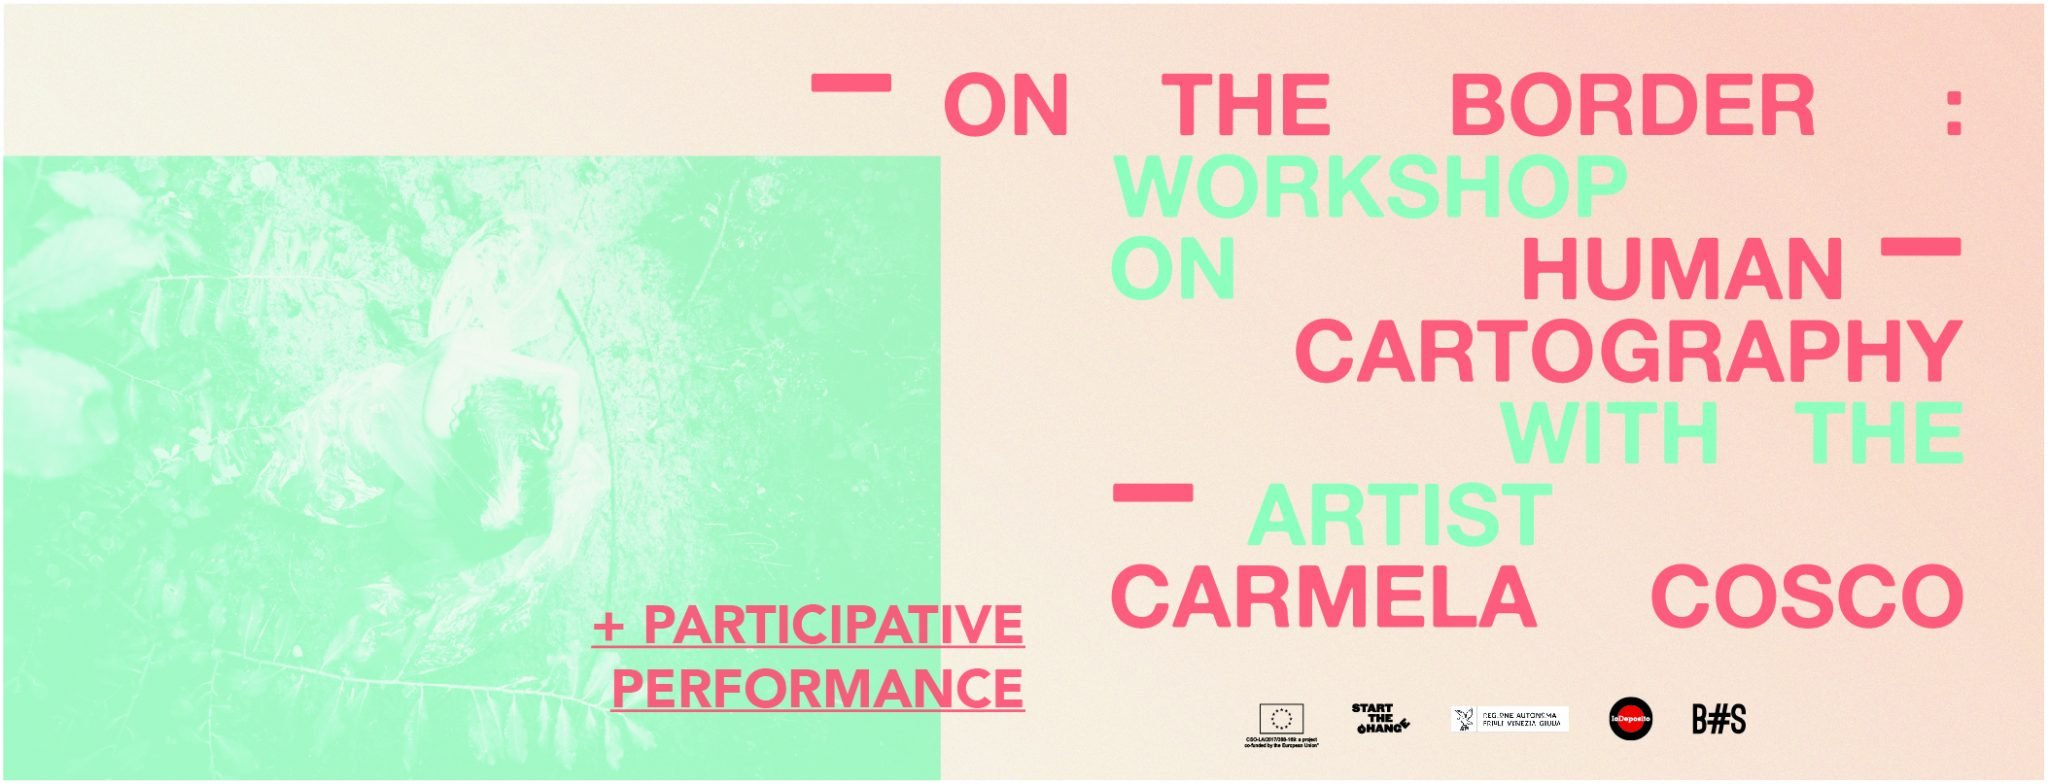 CARMELA COSCO'S PARTICIPATIVE WORKSHOP